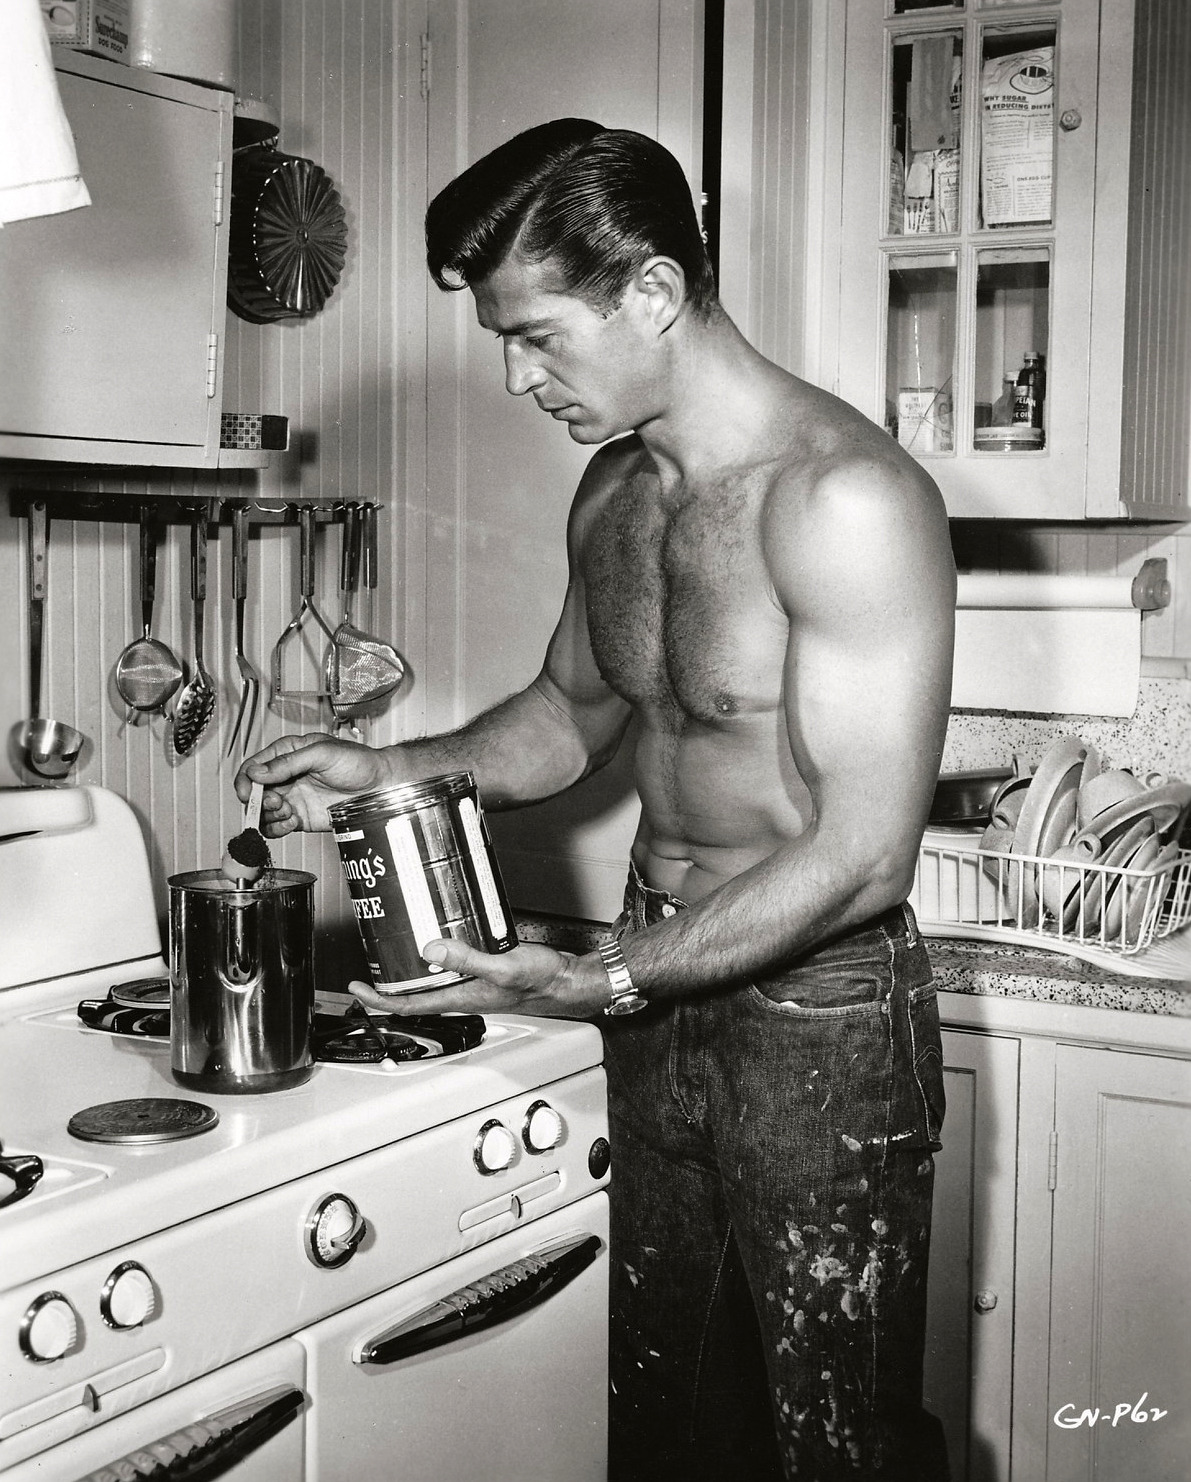 theniftyfifties:  George Nader in the kitchen, 1950s.         I could imagine waking up to this every morning